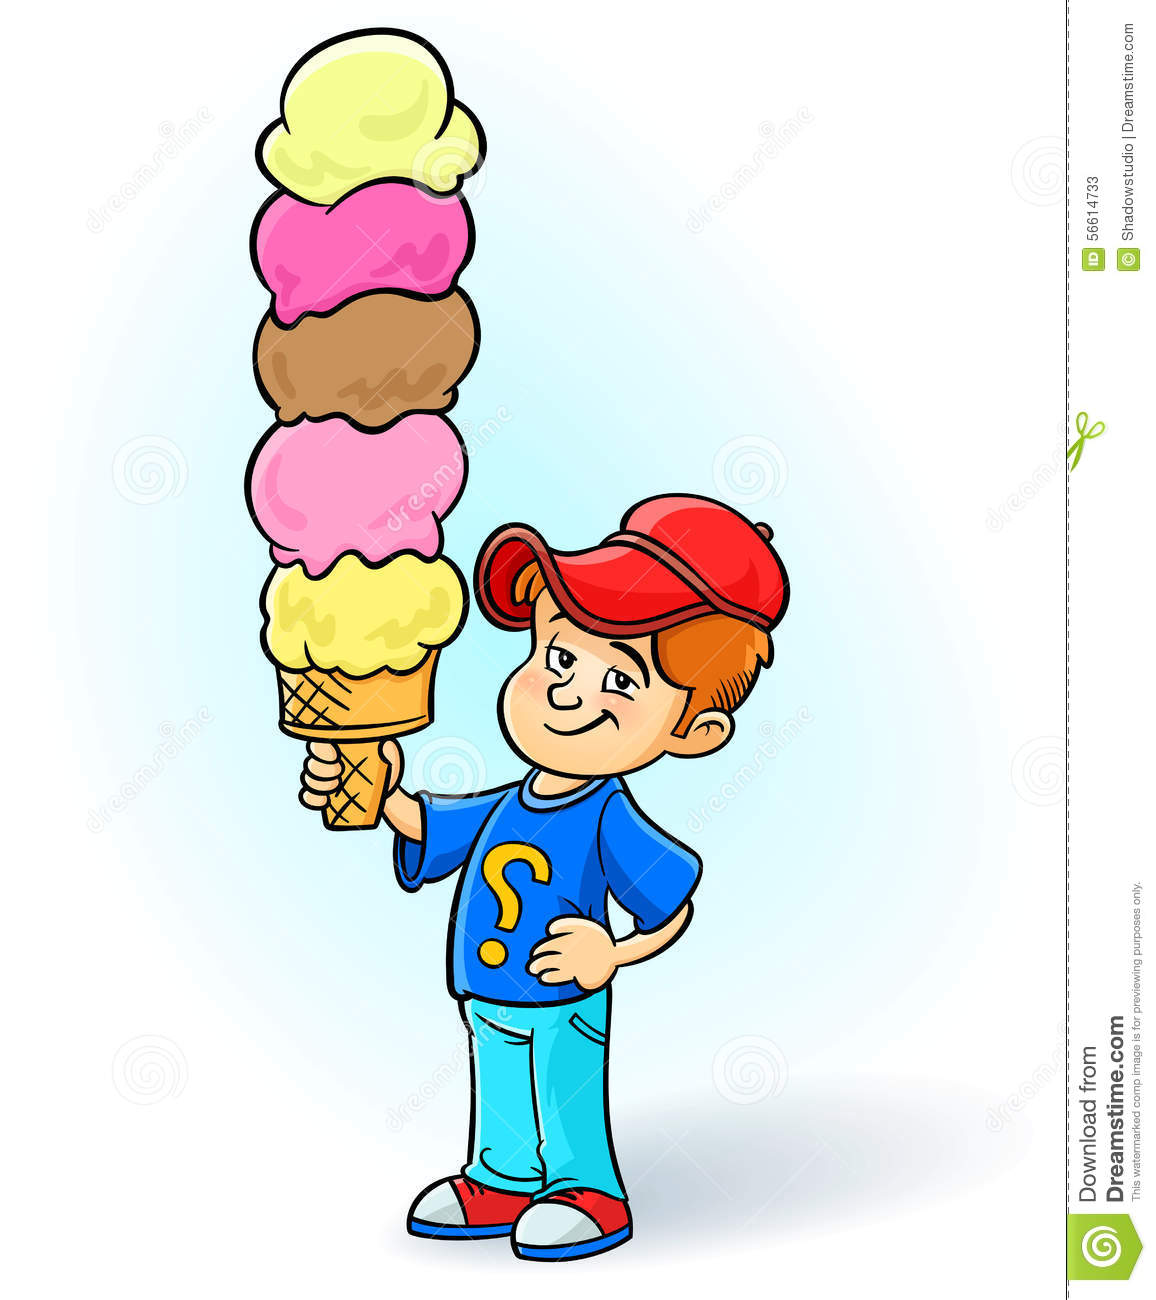 hight resolution of 1156x1300 collection of children eating ice cream clipart high quality